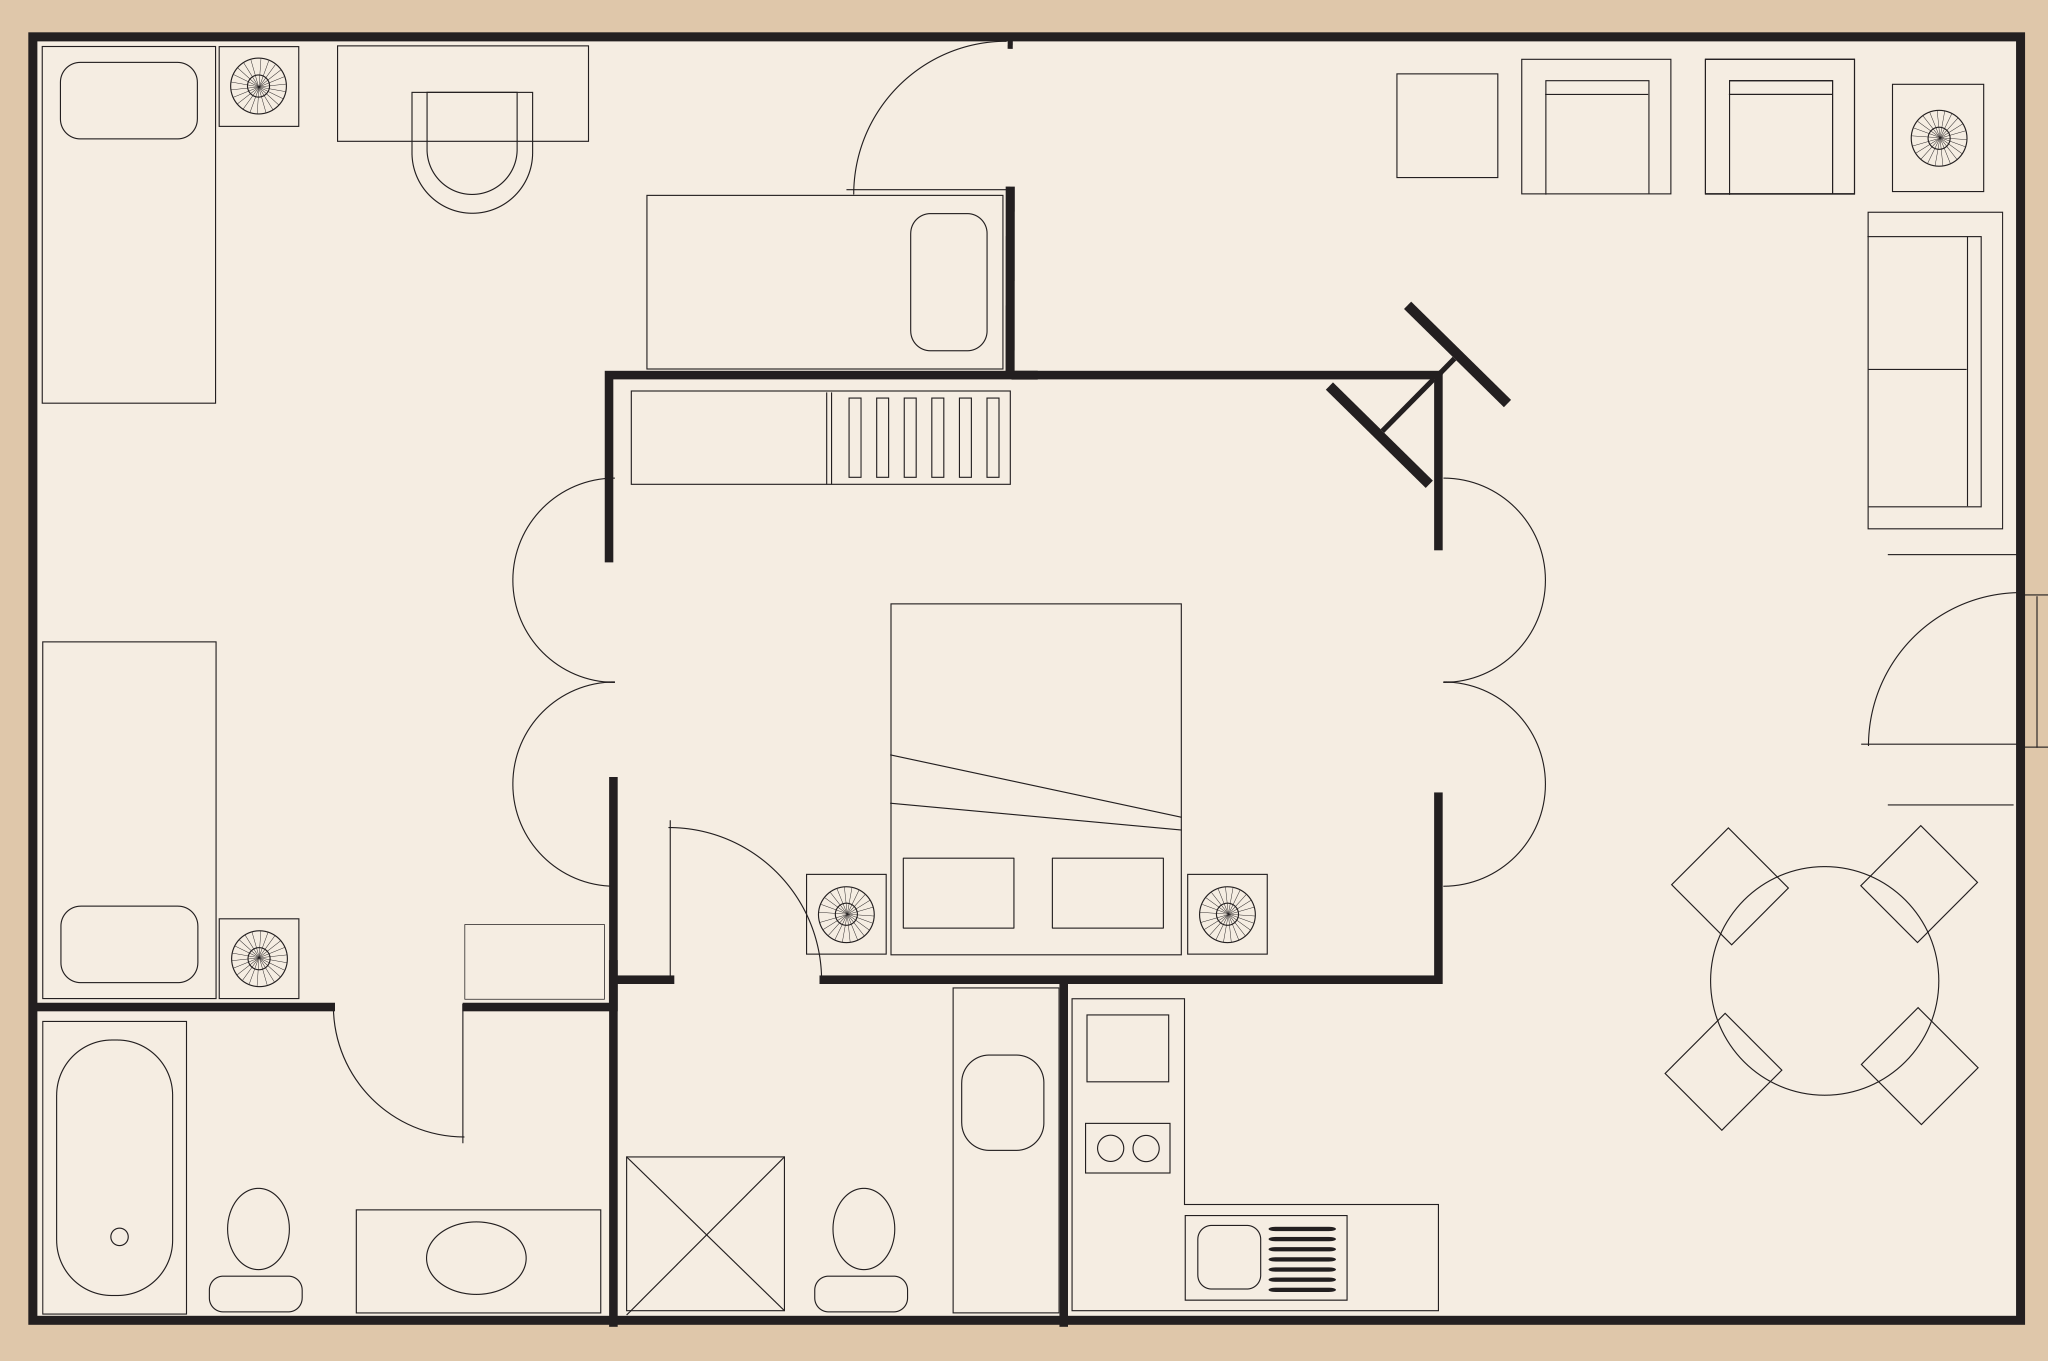 Cable Beach Club bungalow 125 layout